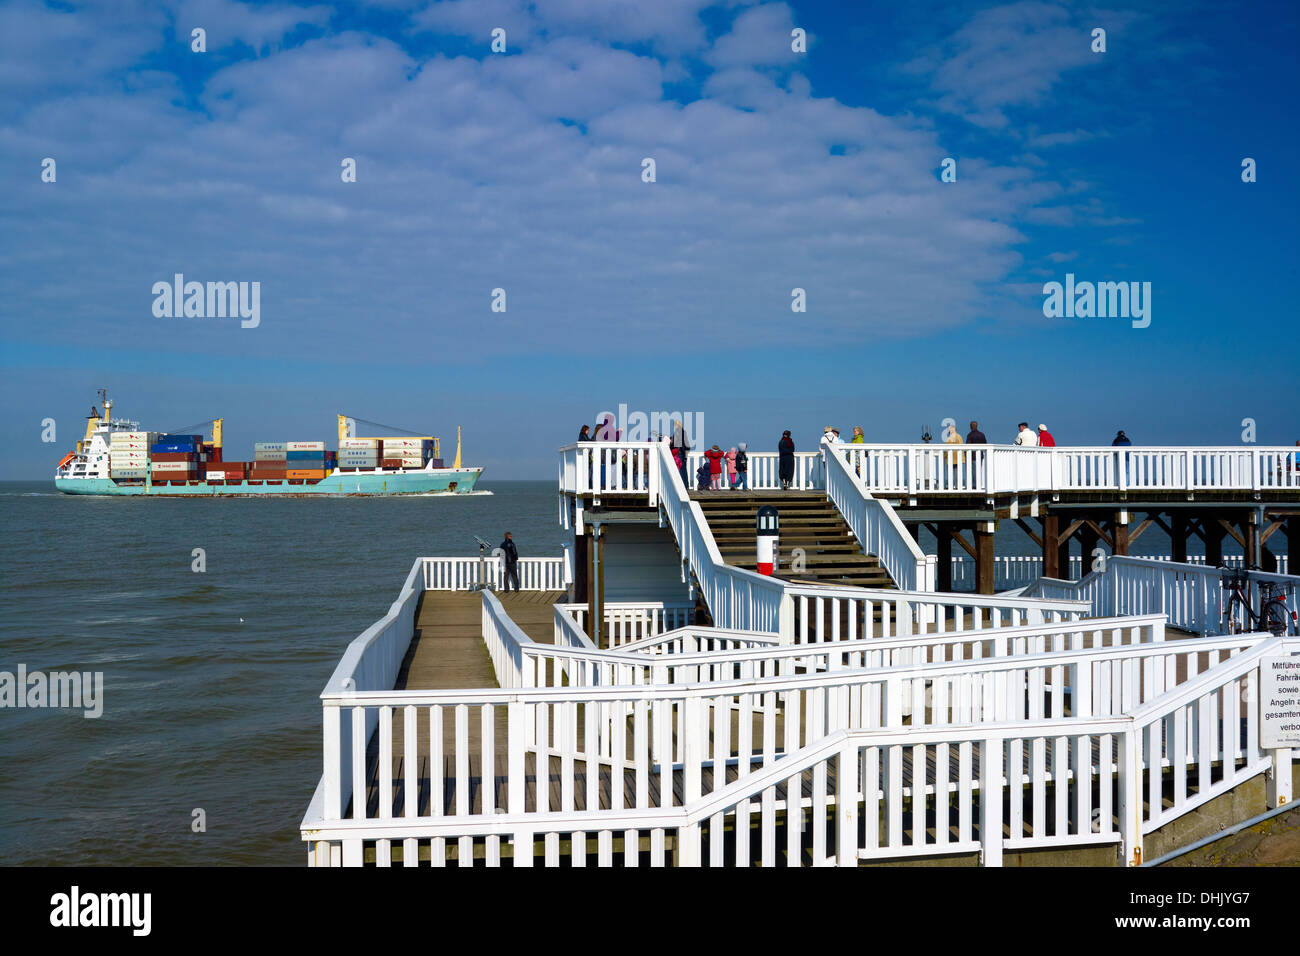 Harbor jetty at Alte Liebe, Cuxhaven, Lower Saxony, Germany - Stock Image